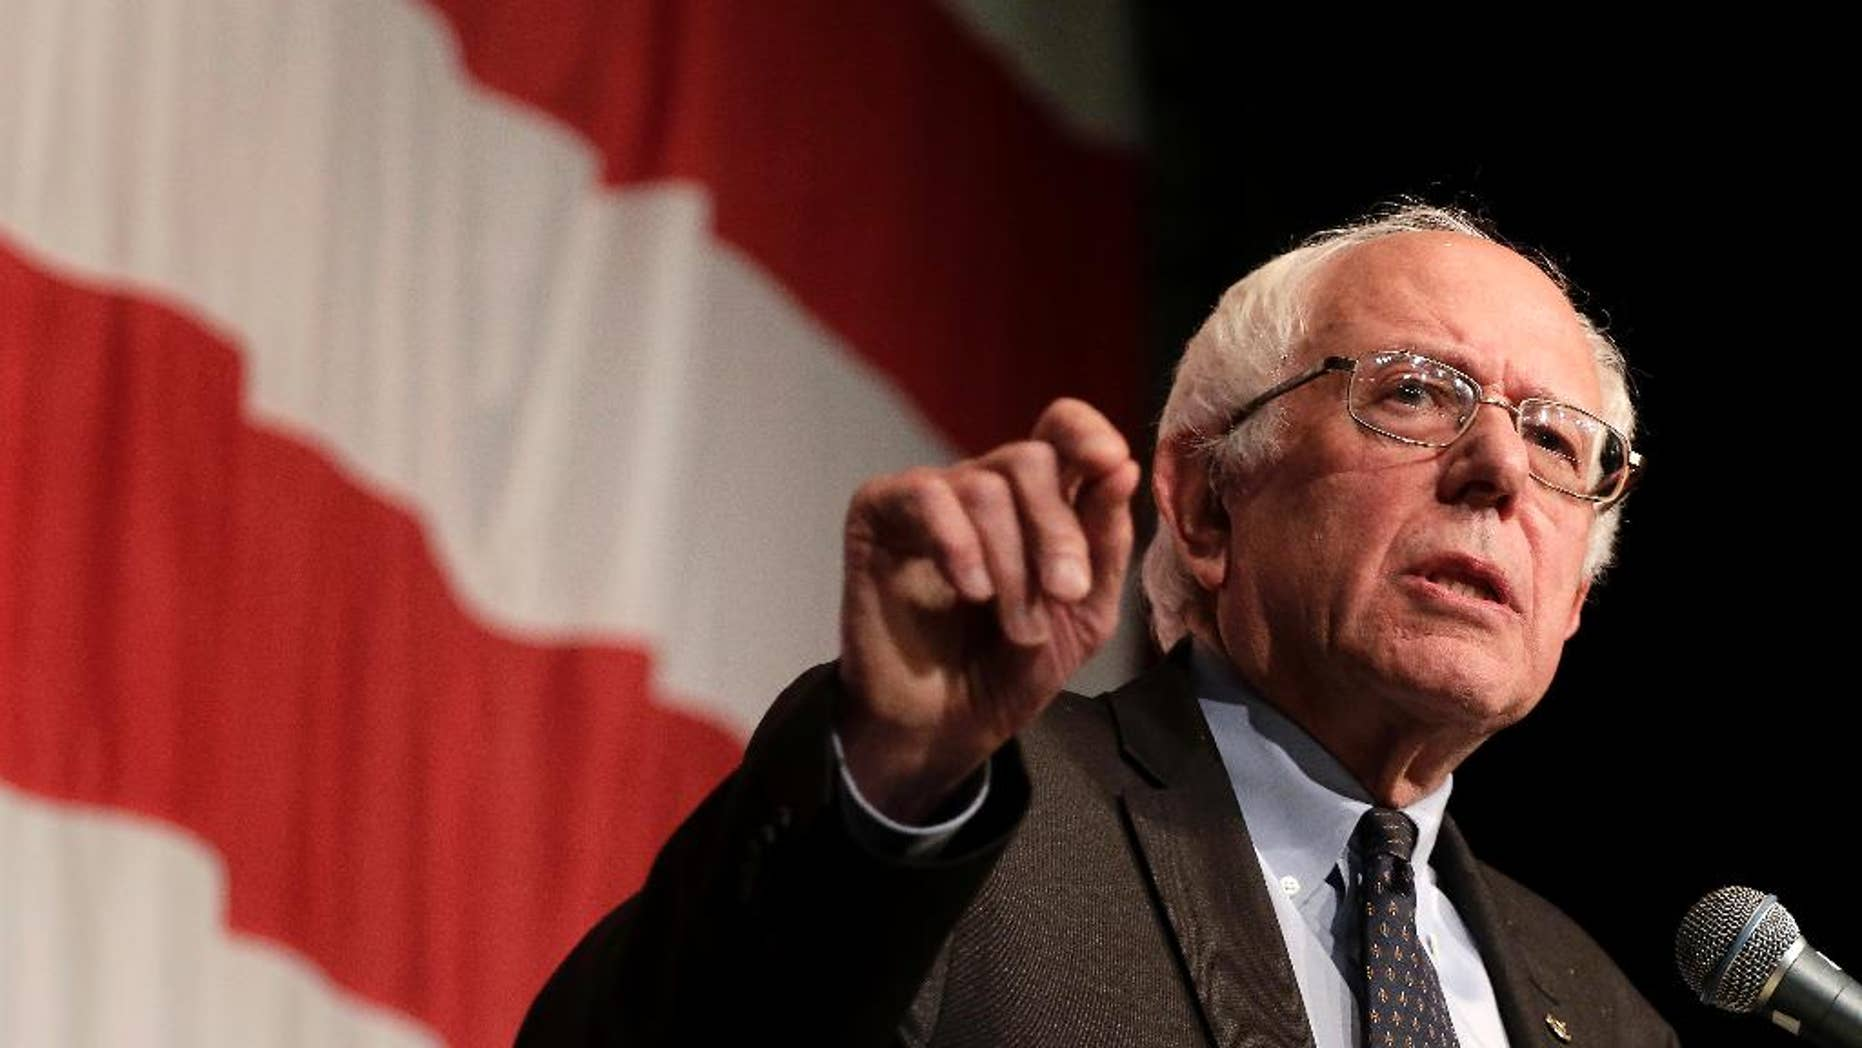 """FILE - In this Aug. 14, 2015, file photo, Democratic presidential candidate Sen. Bernie Sanders, I-Vt., speaks at the at the Iowa Democratic Wing Ding at the Surf Ballroom in Clear Lake, Iowa. The Vermont senator sought to broaden his appeal with black voters Friday, Aug. 21, 2015, in speeches in South Carolina denouncing """"institutional racism"""" in the American political and economic system. (AP Photo/Charlie Riedel, File)"""